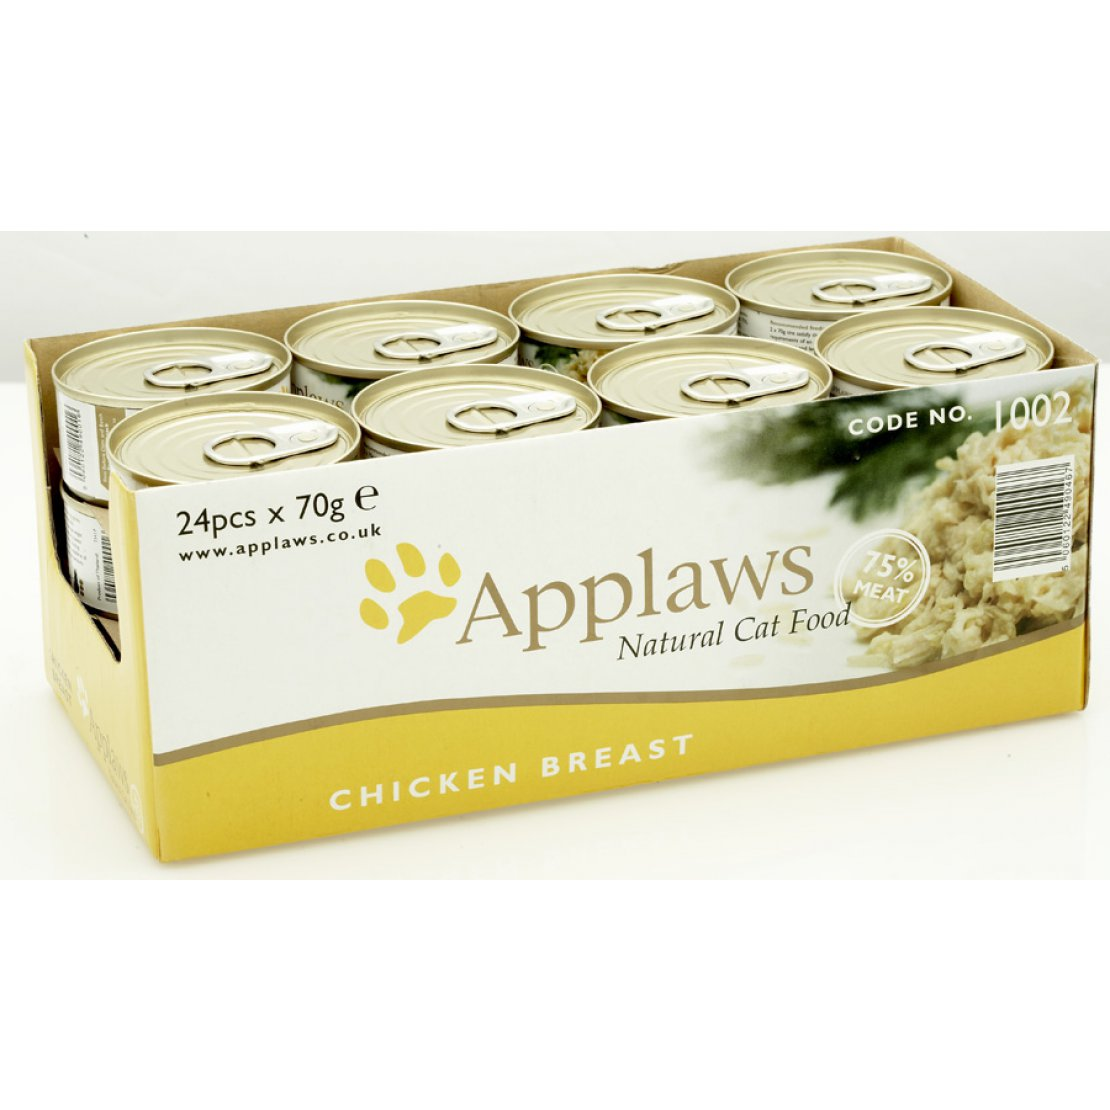 ONLY AVAILABLE FOR LOCAL DELIVERY.  Applaws Cat Food Can. Chicken Breast. Small.